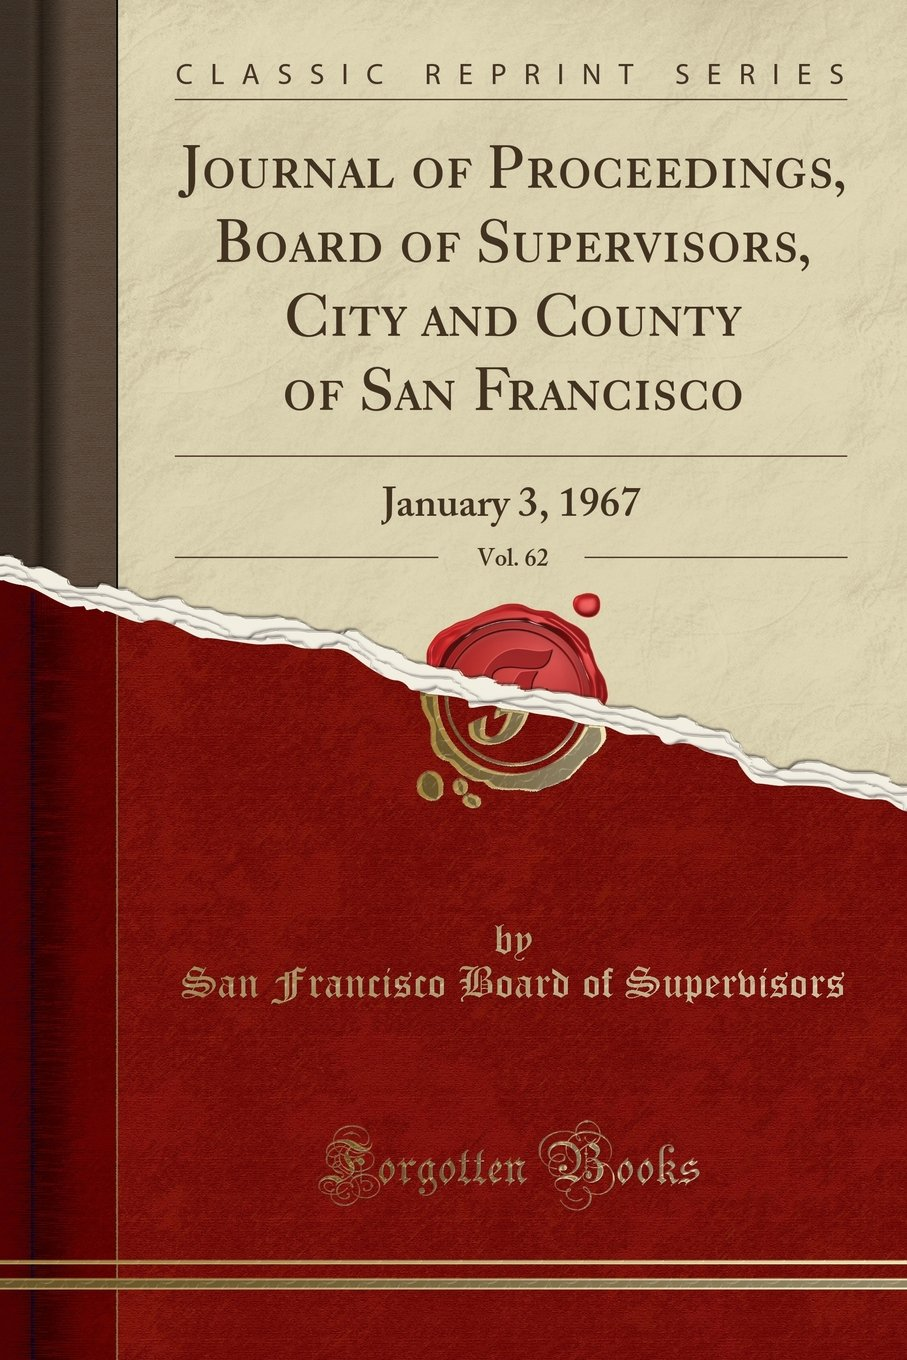 Journal of Proceedings, Board of Supervisors, City and County of San Francisco, Vol. 62: January 3, 1967 (Classic Reprint) pdf